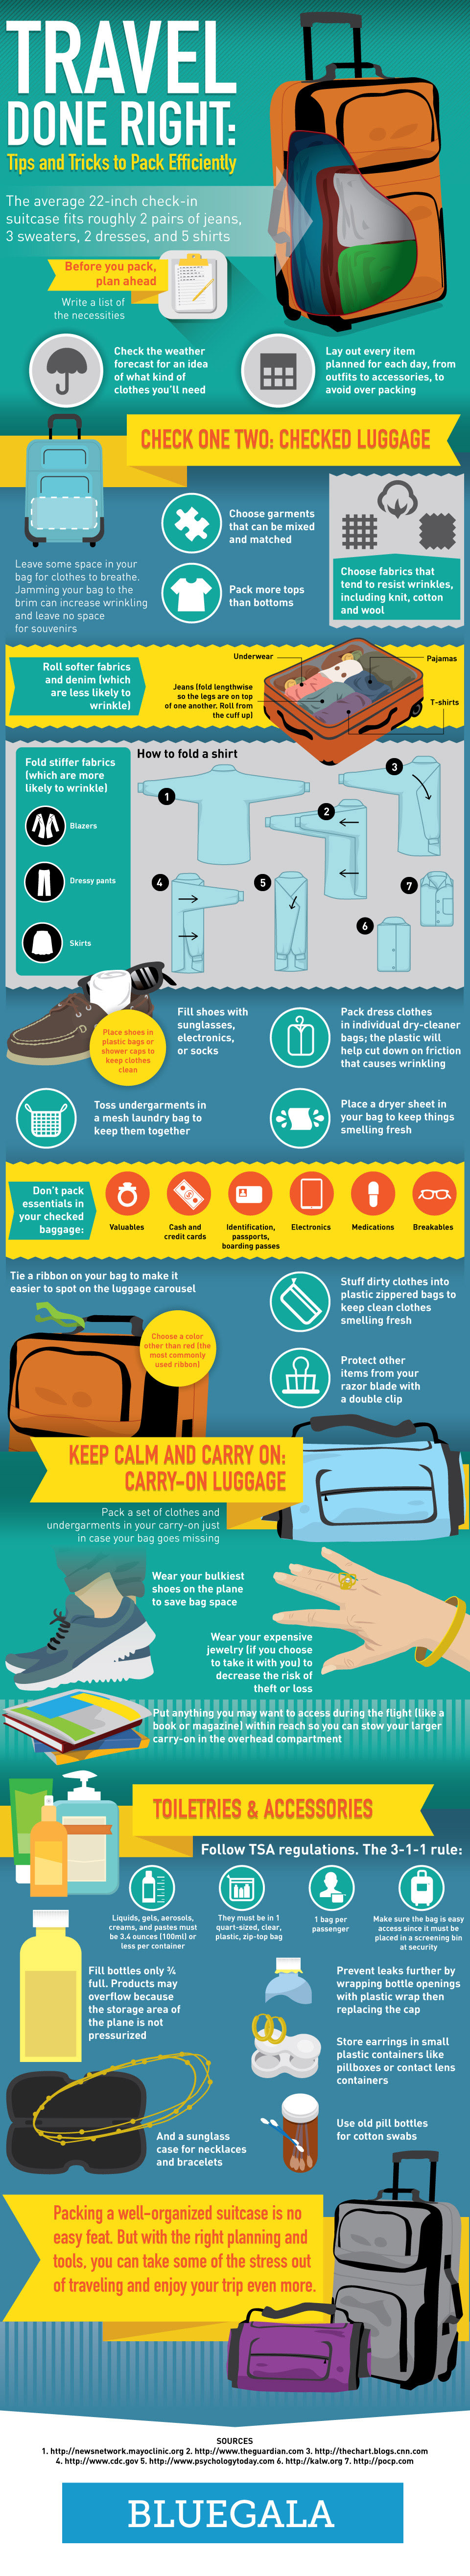 Infographic: Travel Done Right: Tips And Tricks To Pack Efficiently